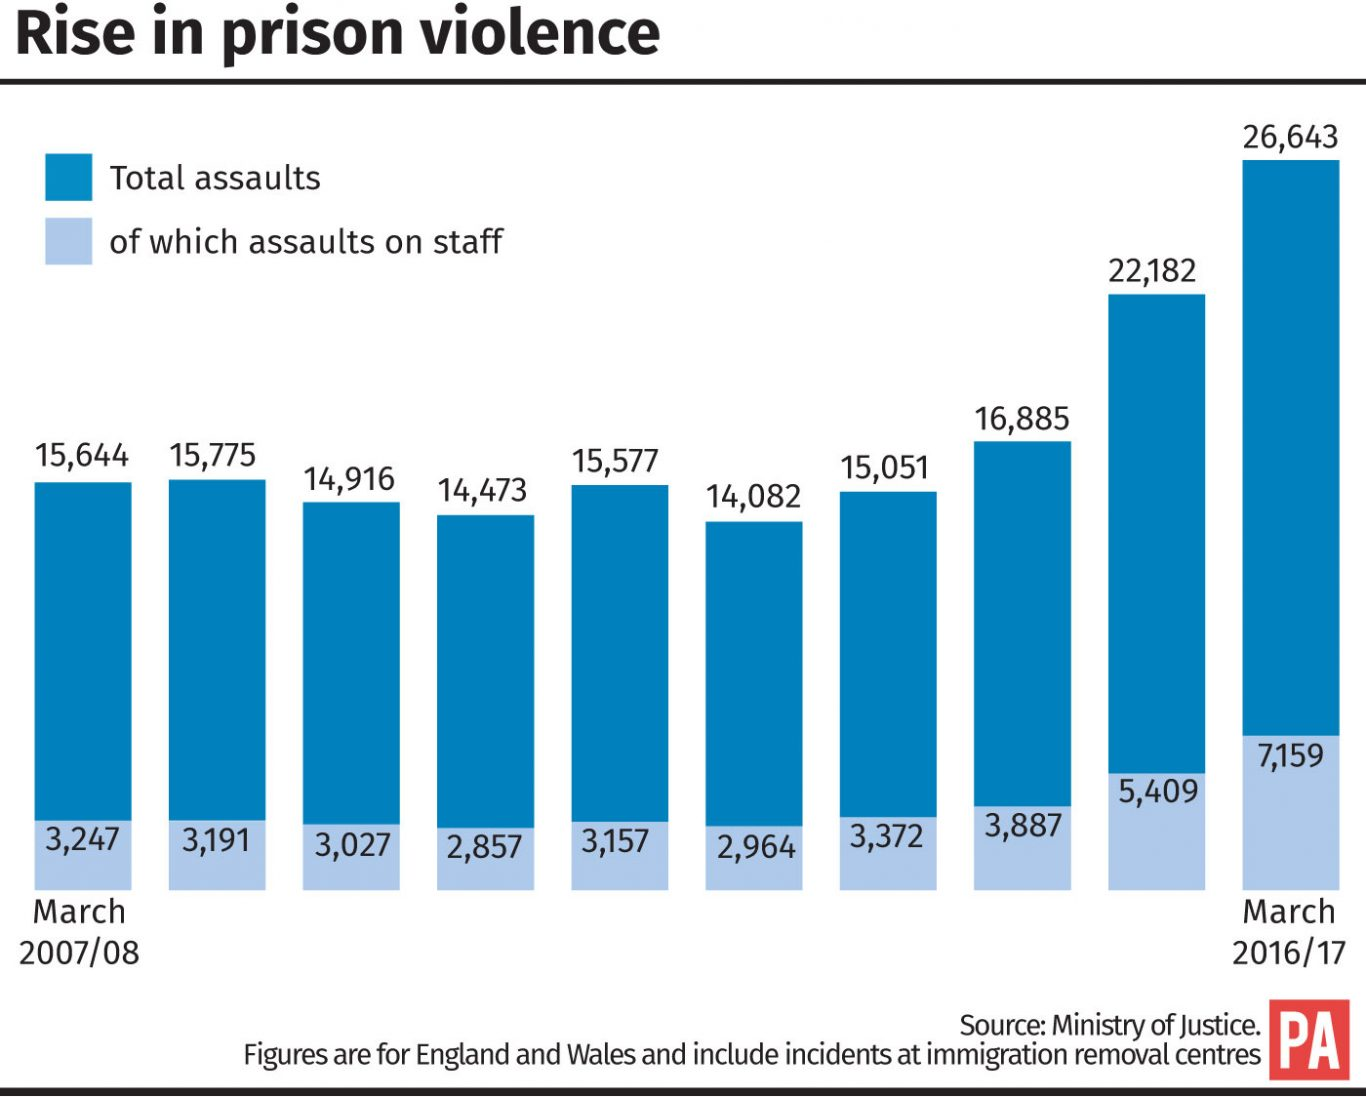 Graphic charts the rise in prison violence